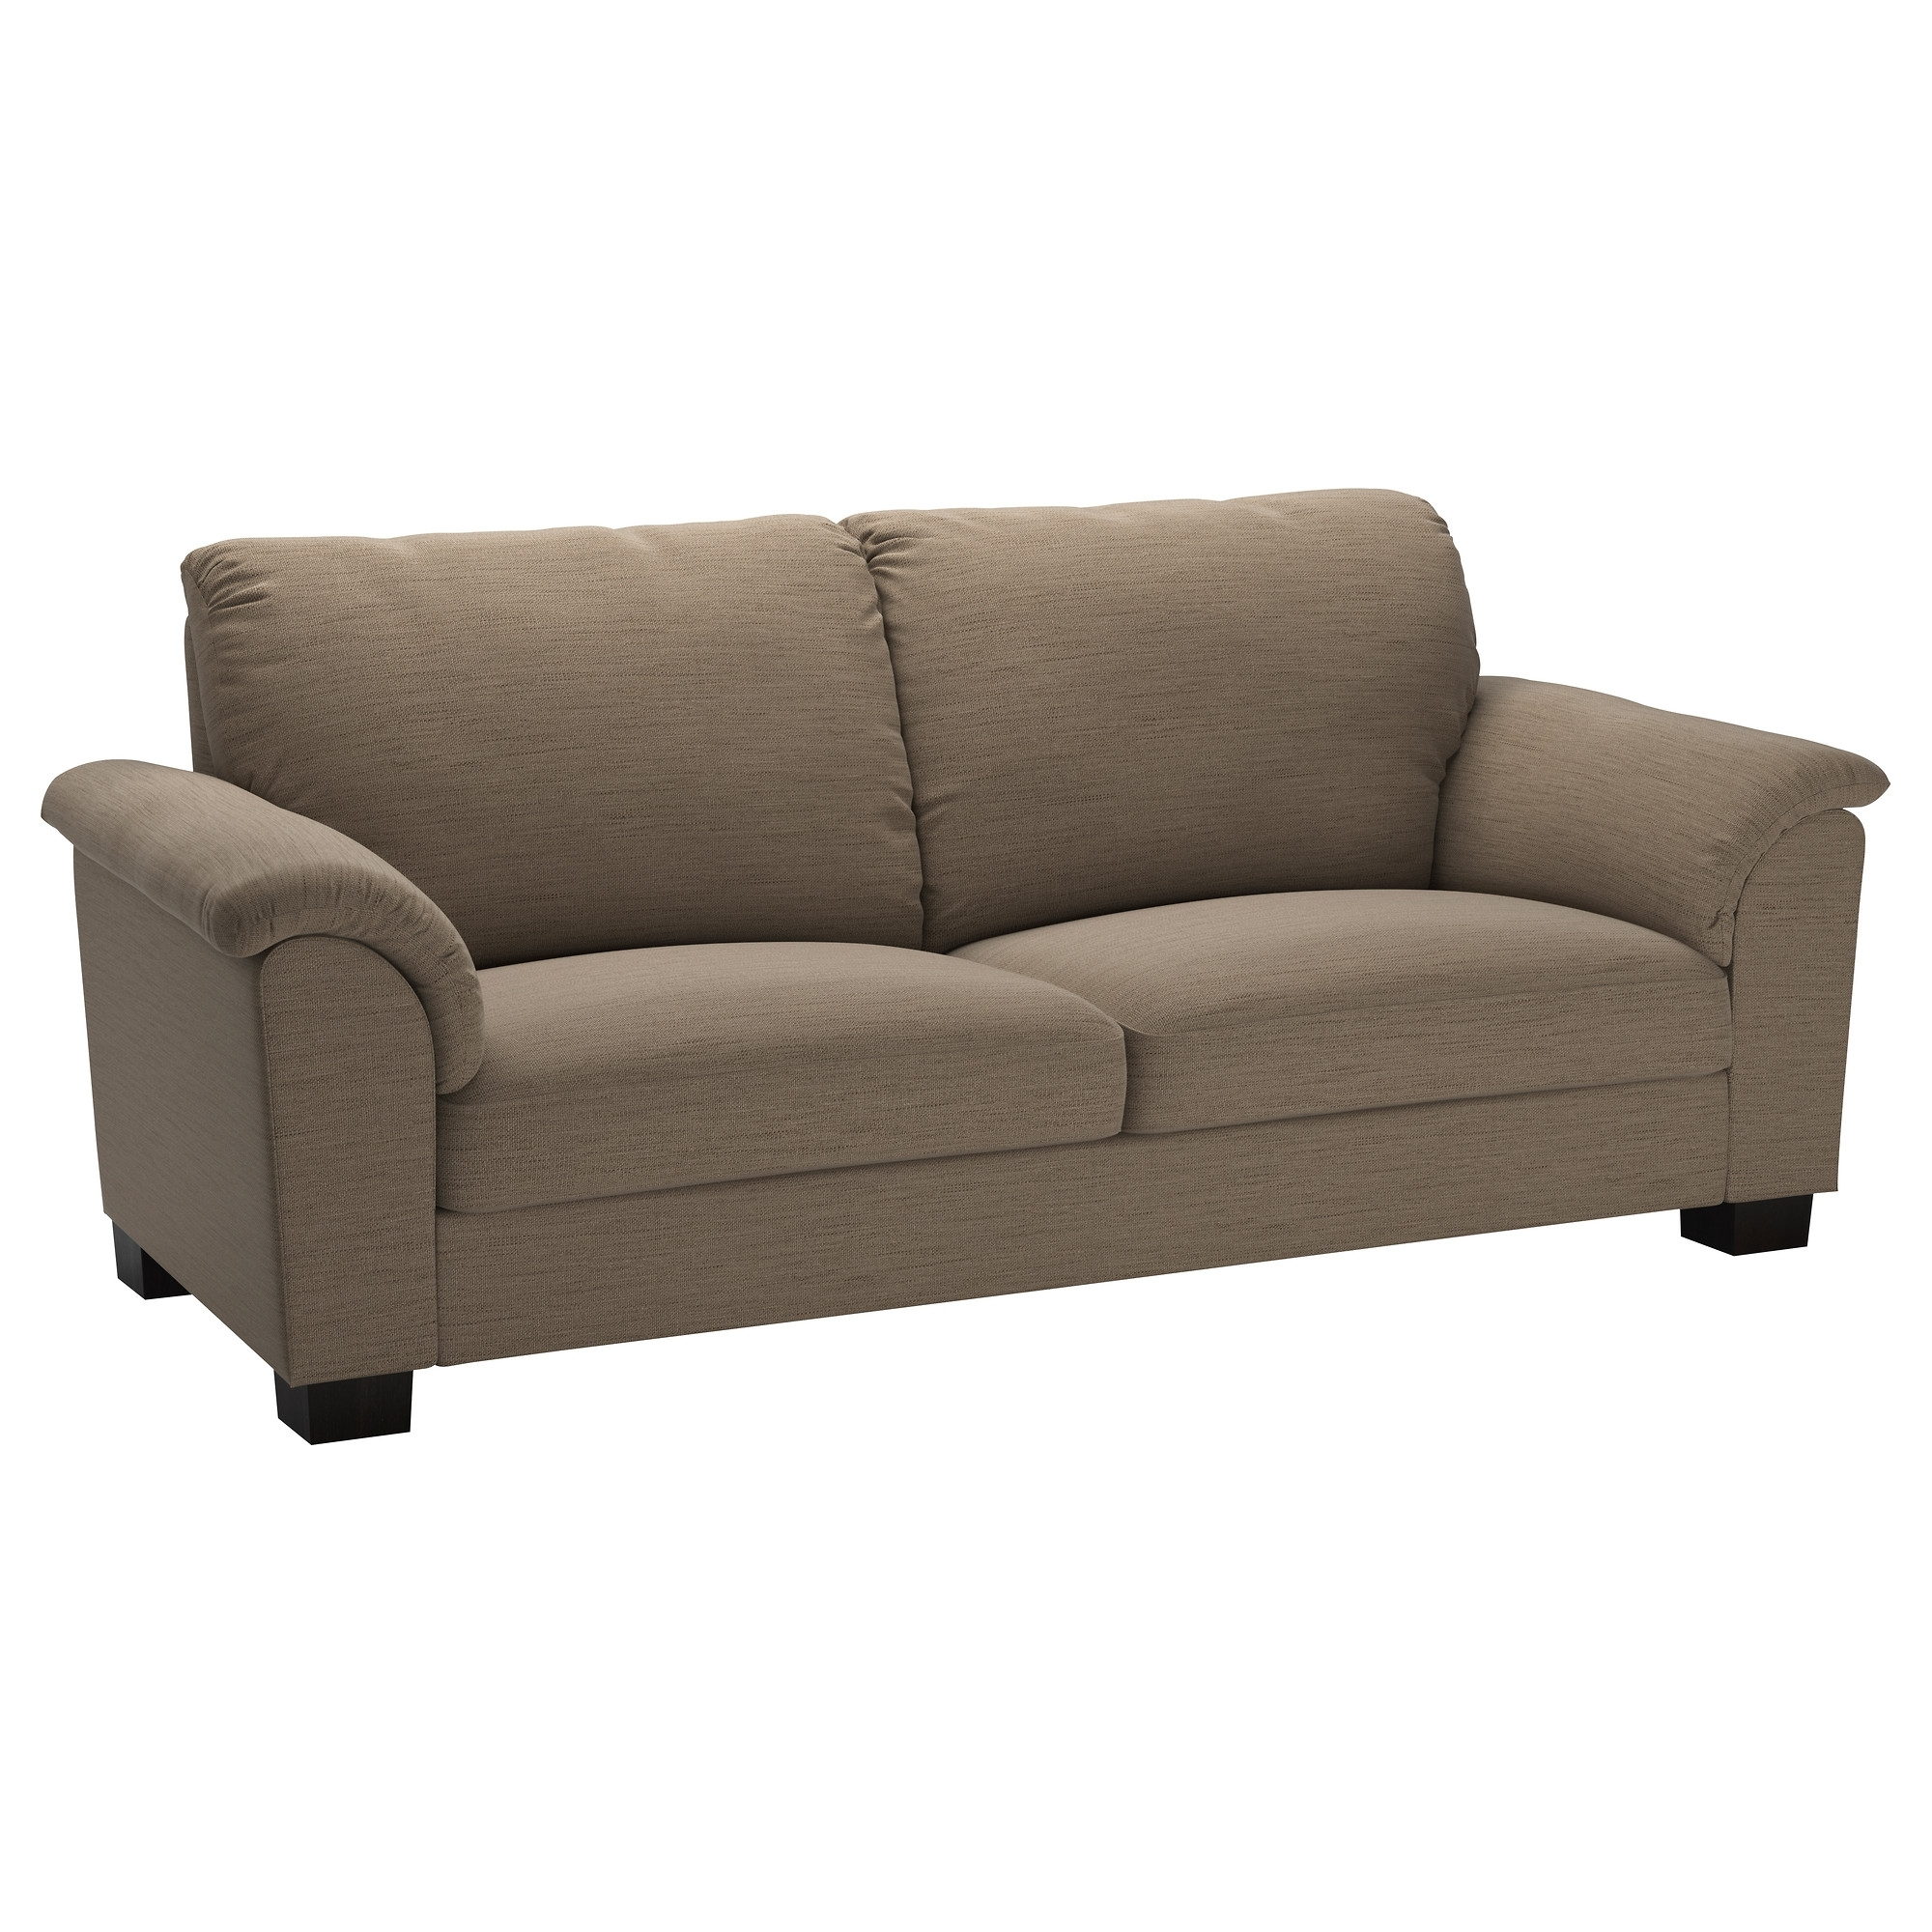 Most Recent Sofas With High Backs In Tidafors Sofa – Dansbo Medium Brown – Ikea (View 15 of 20)